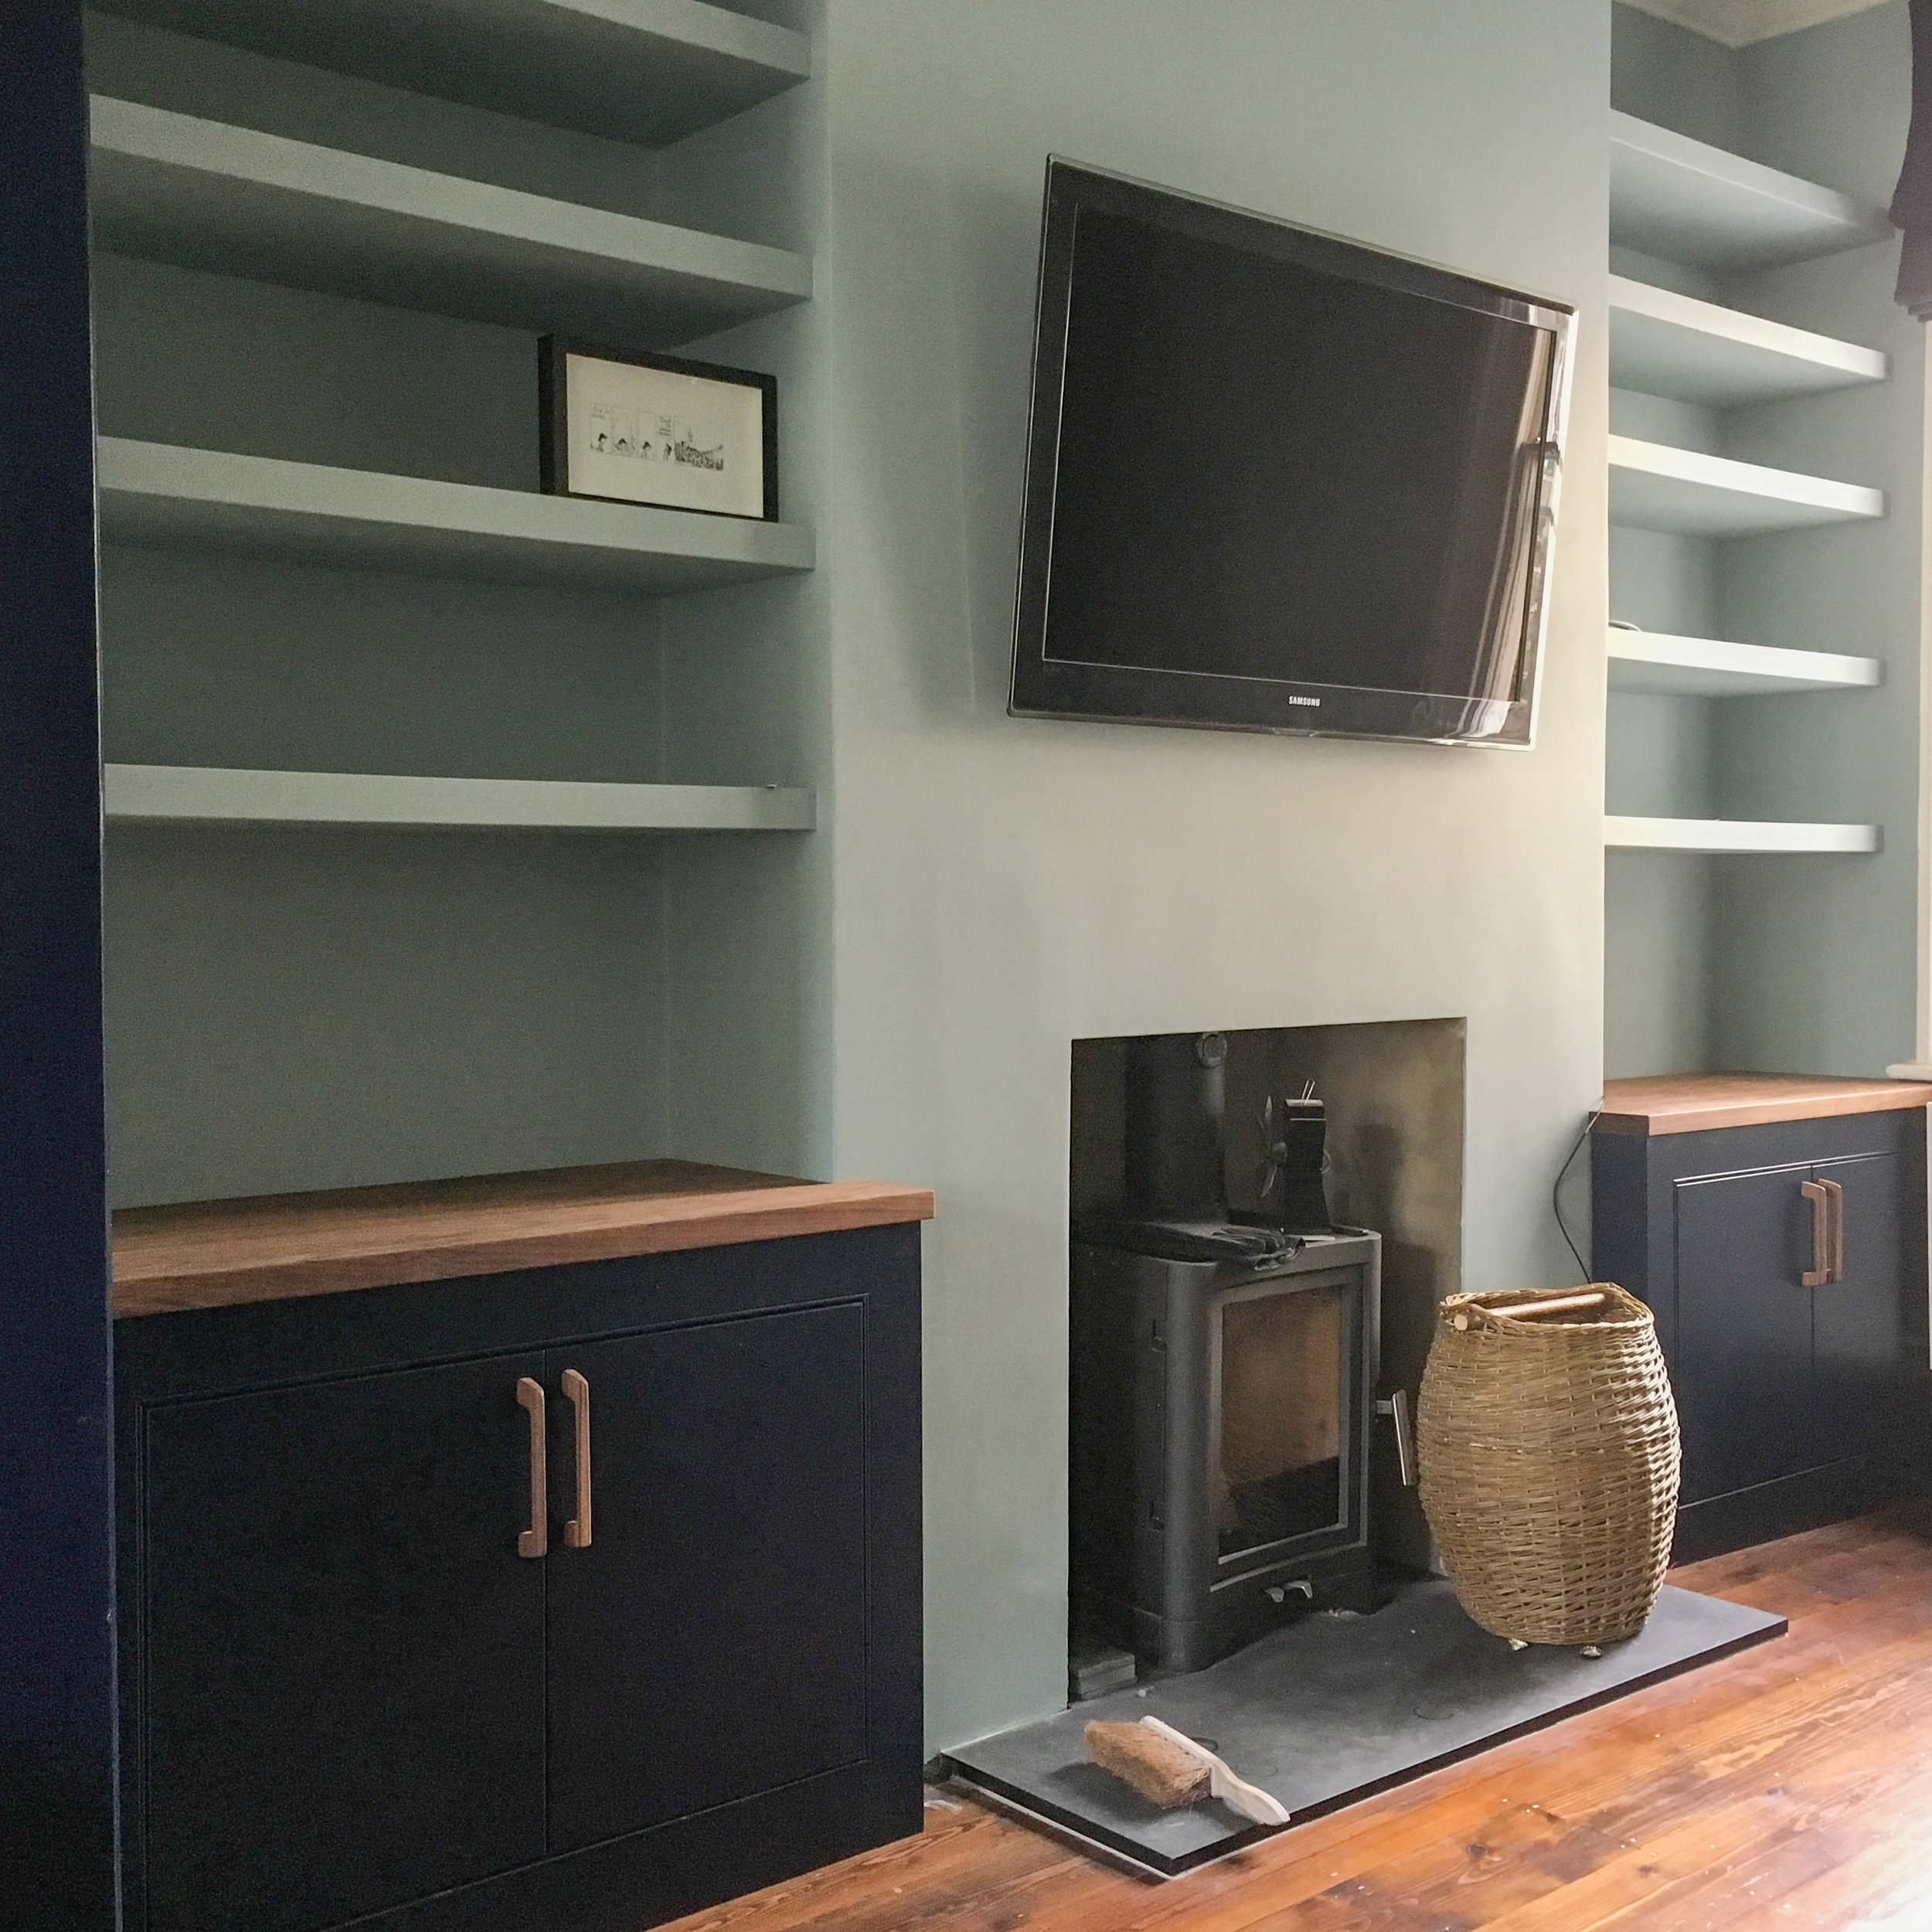 Alcove cabinets and floating shelves